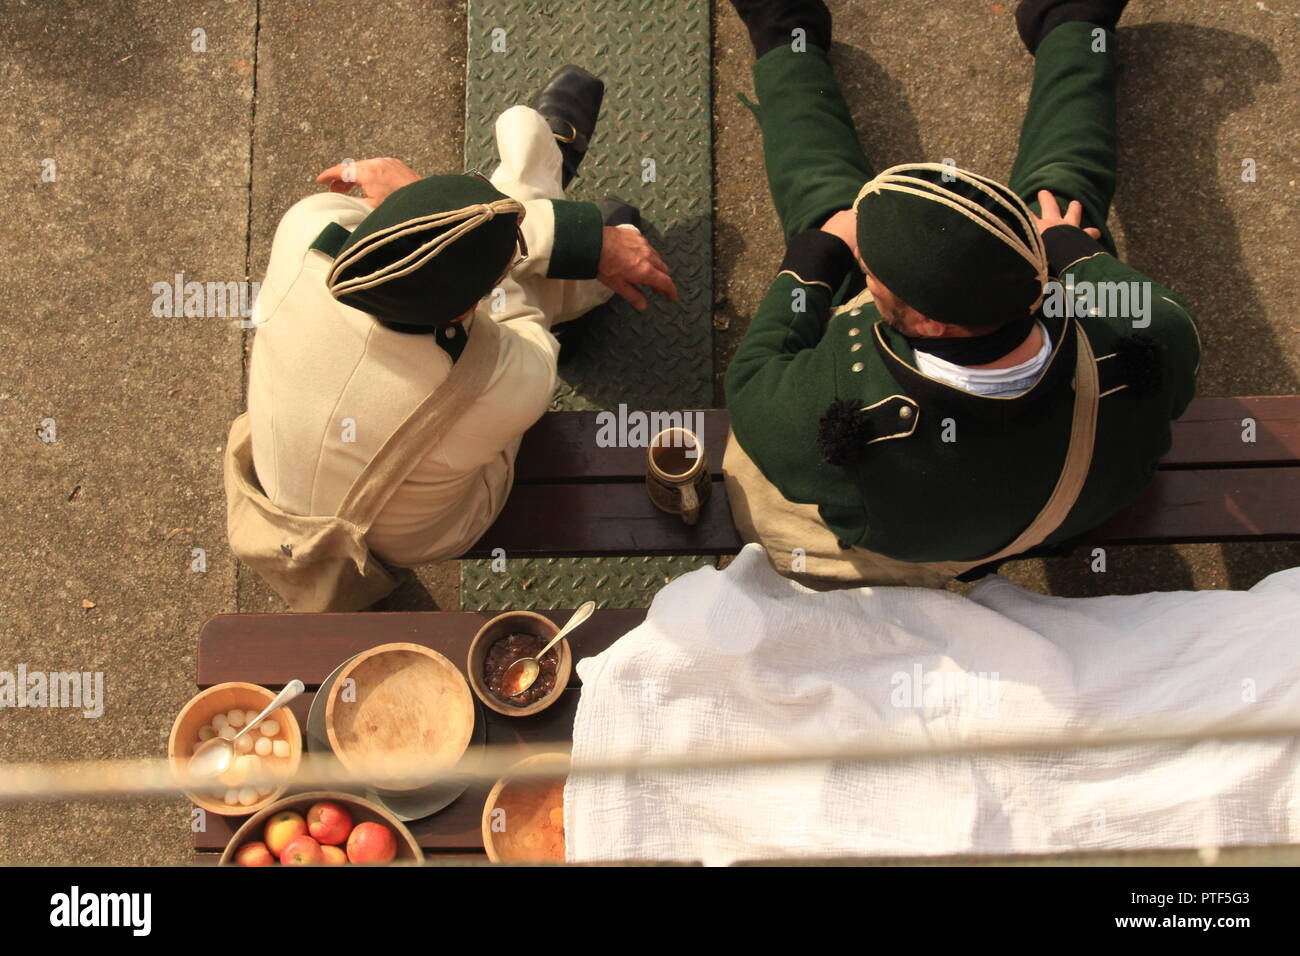 Filming overhead  POV- Rifleman Diaries- Two riflemen seated in period military costume sit chatting. - Stock Image